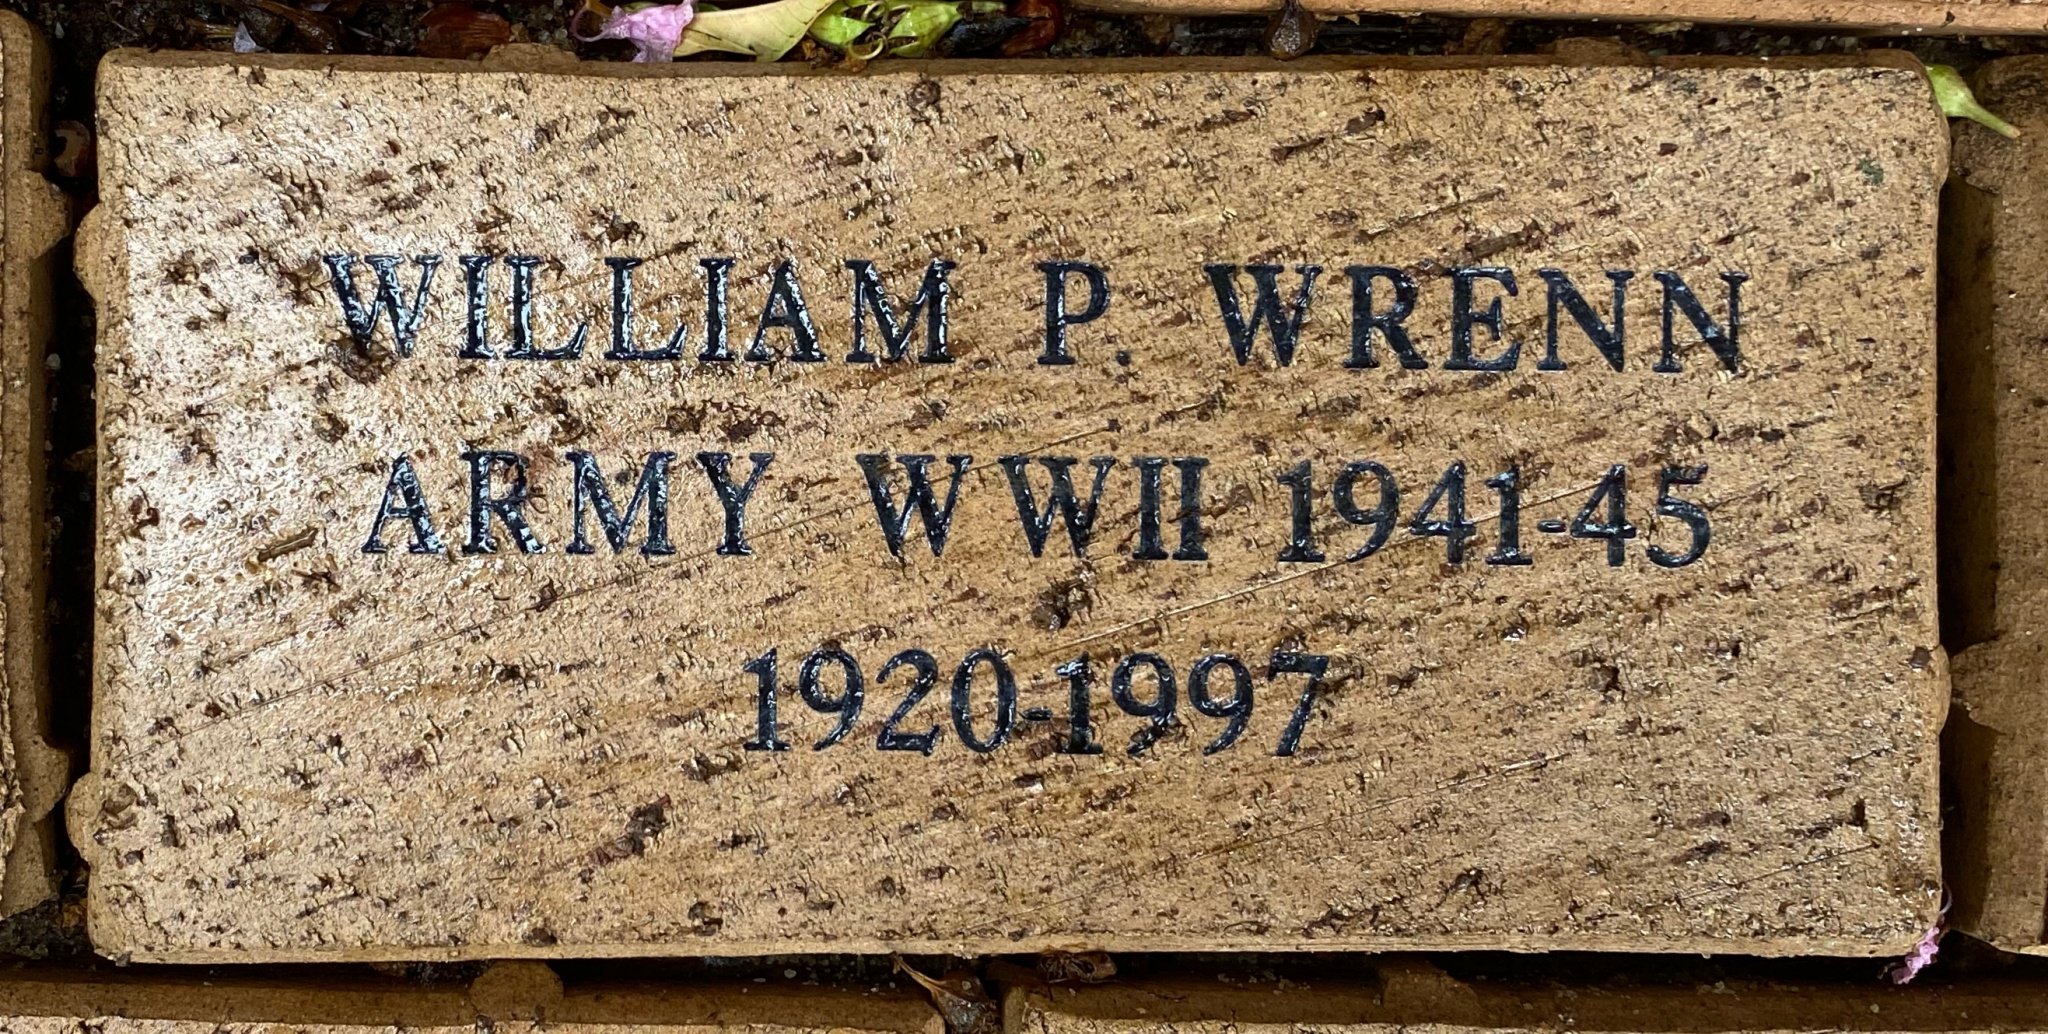 WILLIAM P. WRENN ARMY WWII 1941-45 1920-1997